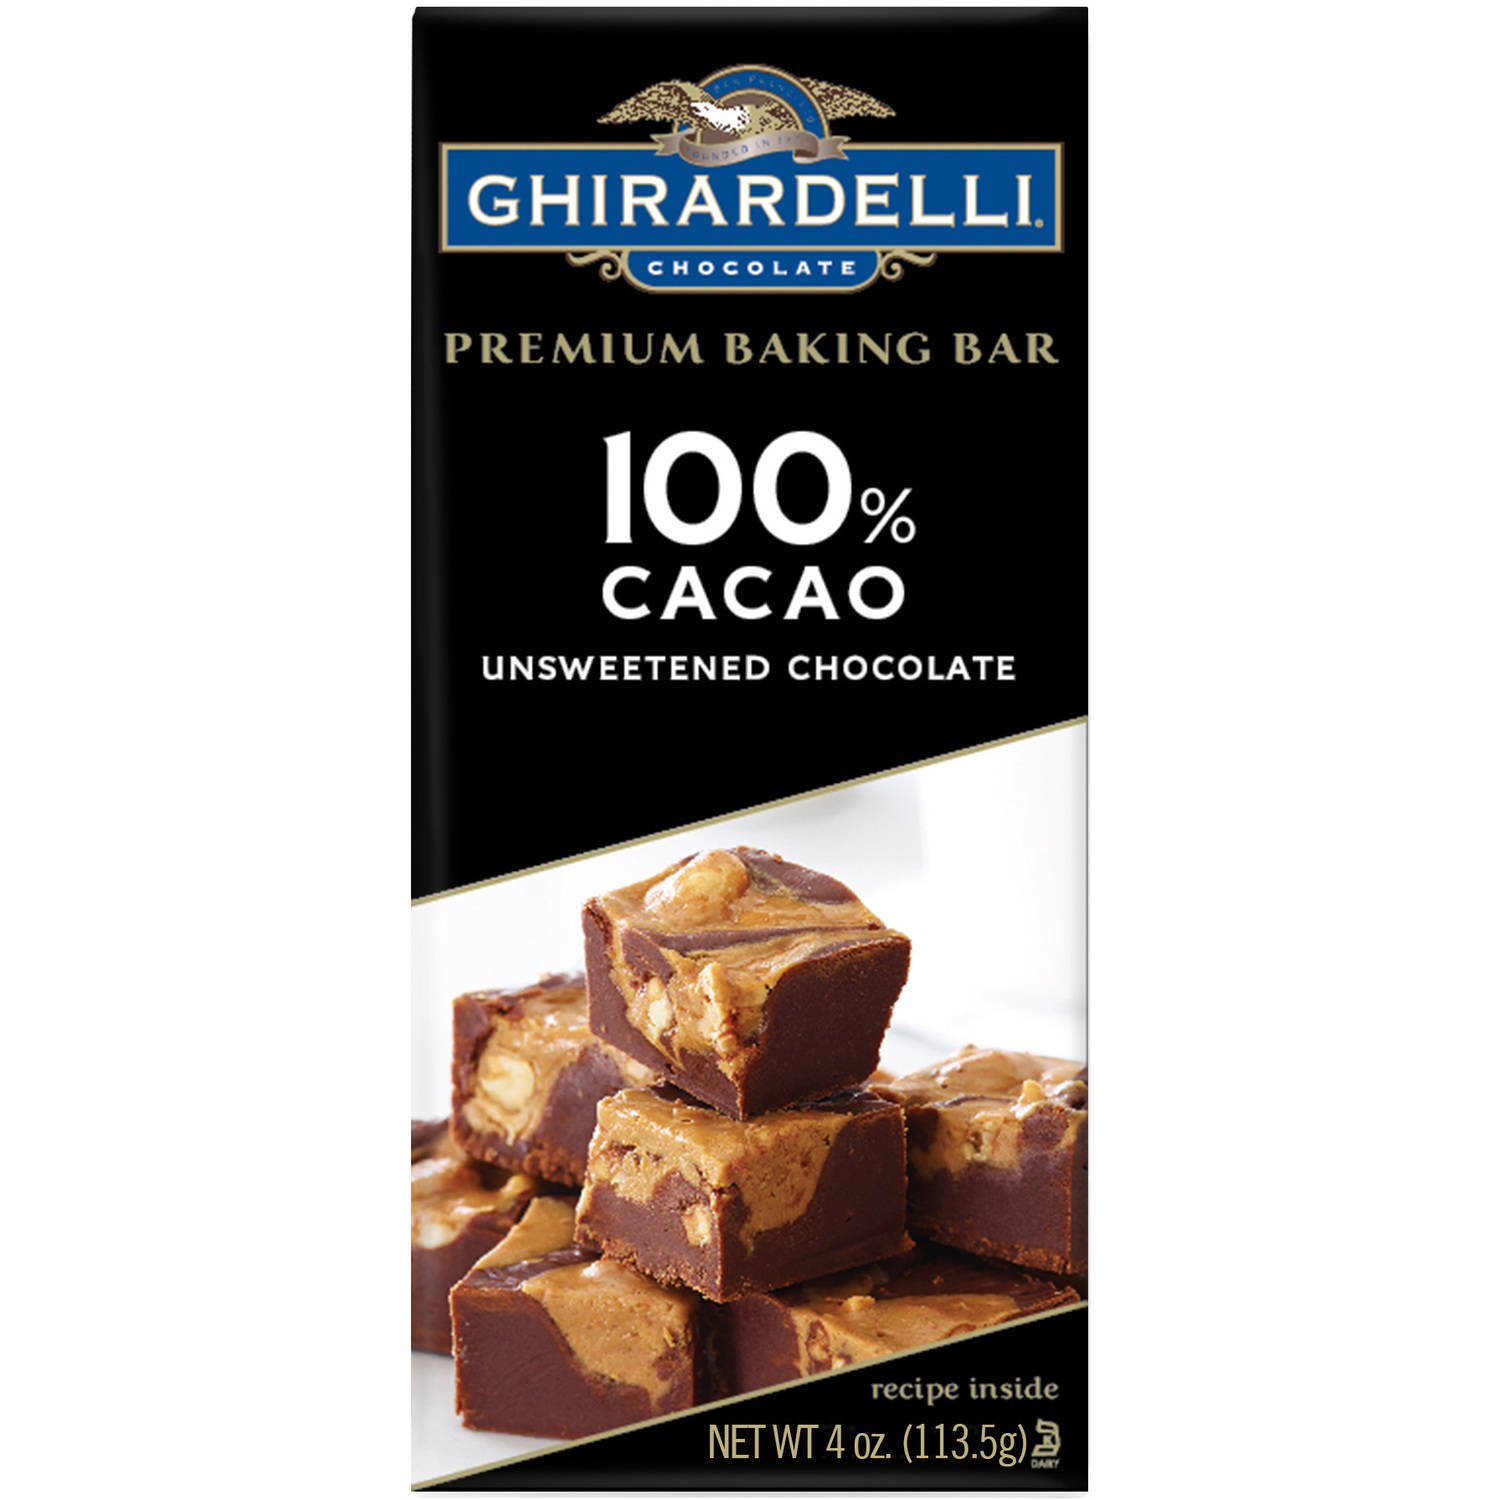 Ghirardelli 100% Cacao Unsweetened Chocolate Premium Baking Bar, 4 oz